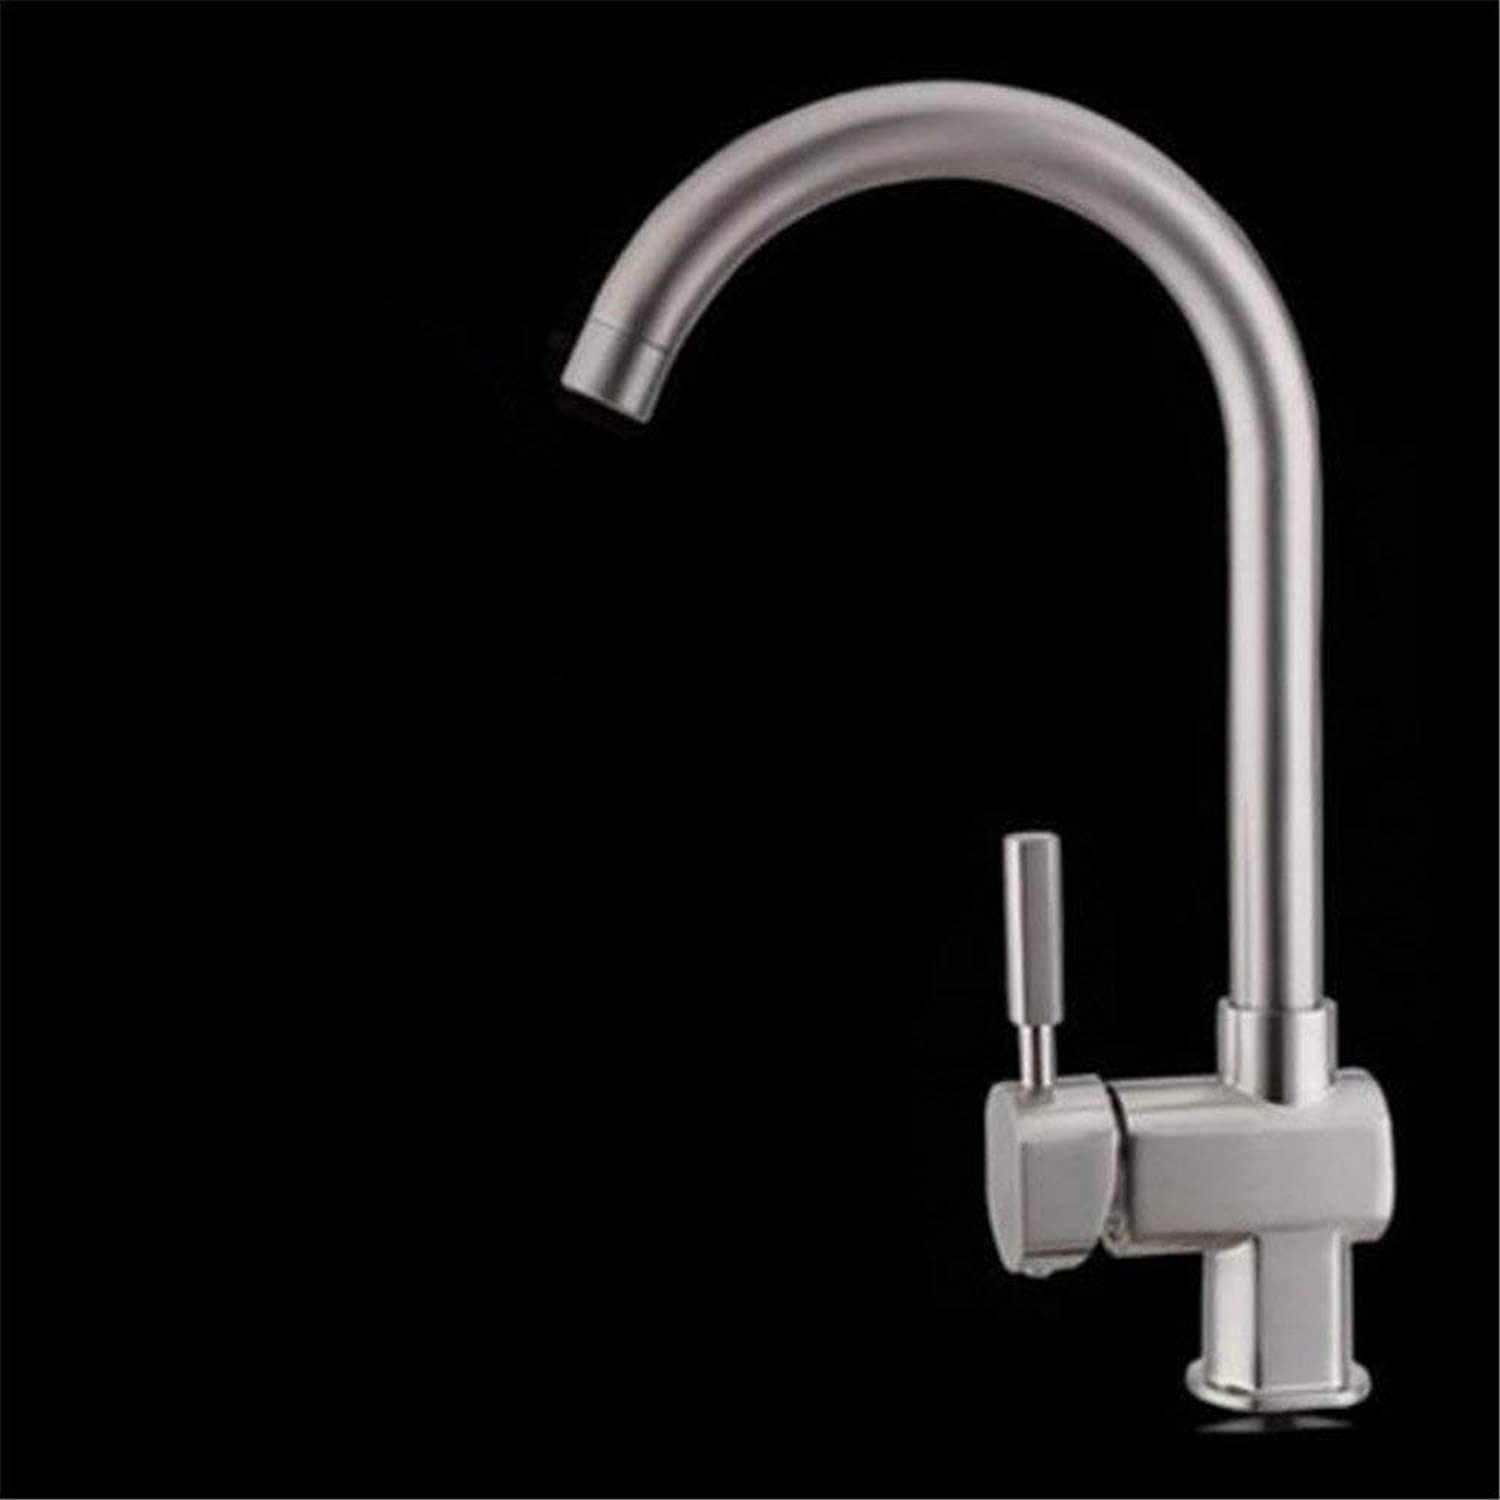 Oudan Lead-Free Copper Kitchen Mixer Drawing Whole Vegetables Basin Sink Mixer 304 Stainless Steel redary Joint to A Single Ceramic Valve Core Hole, A (color   B, Size   -)